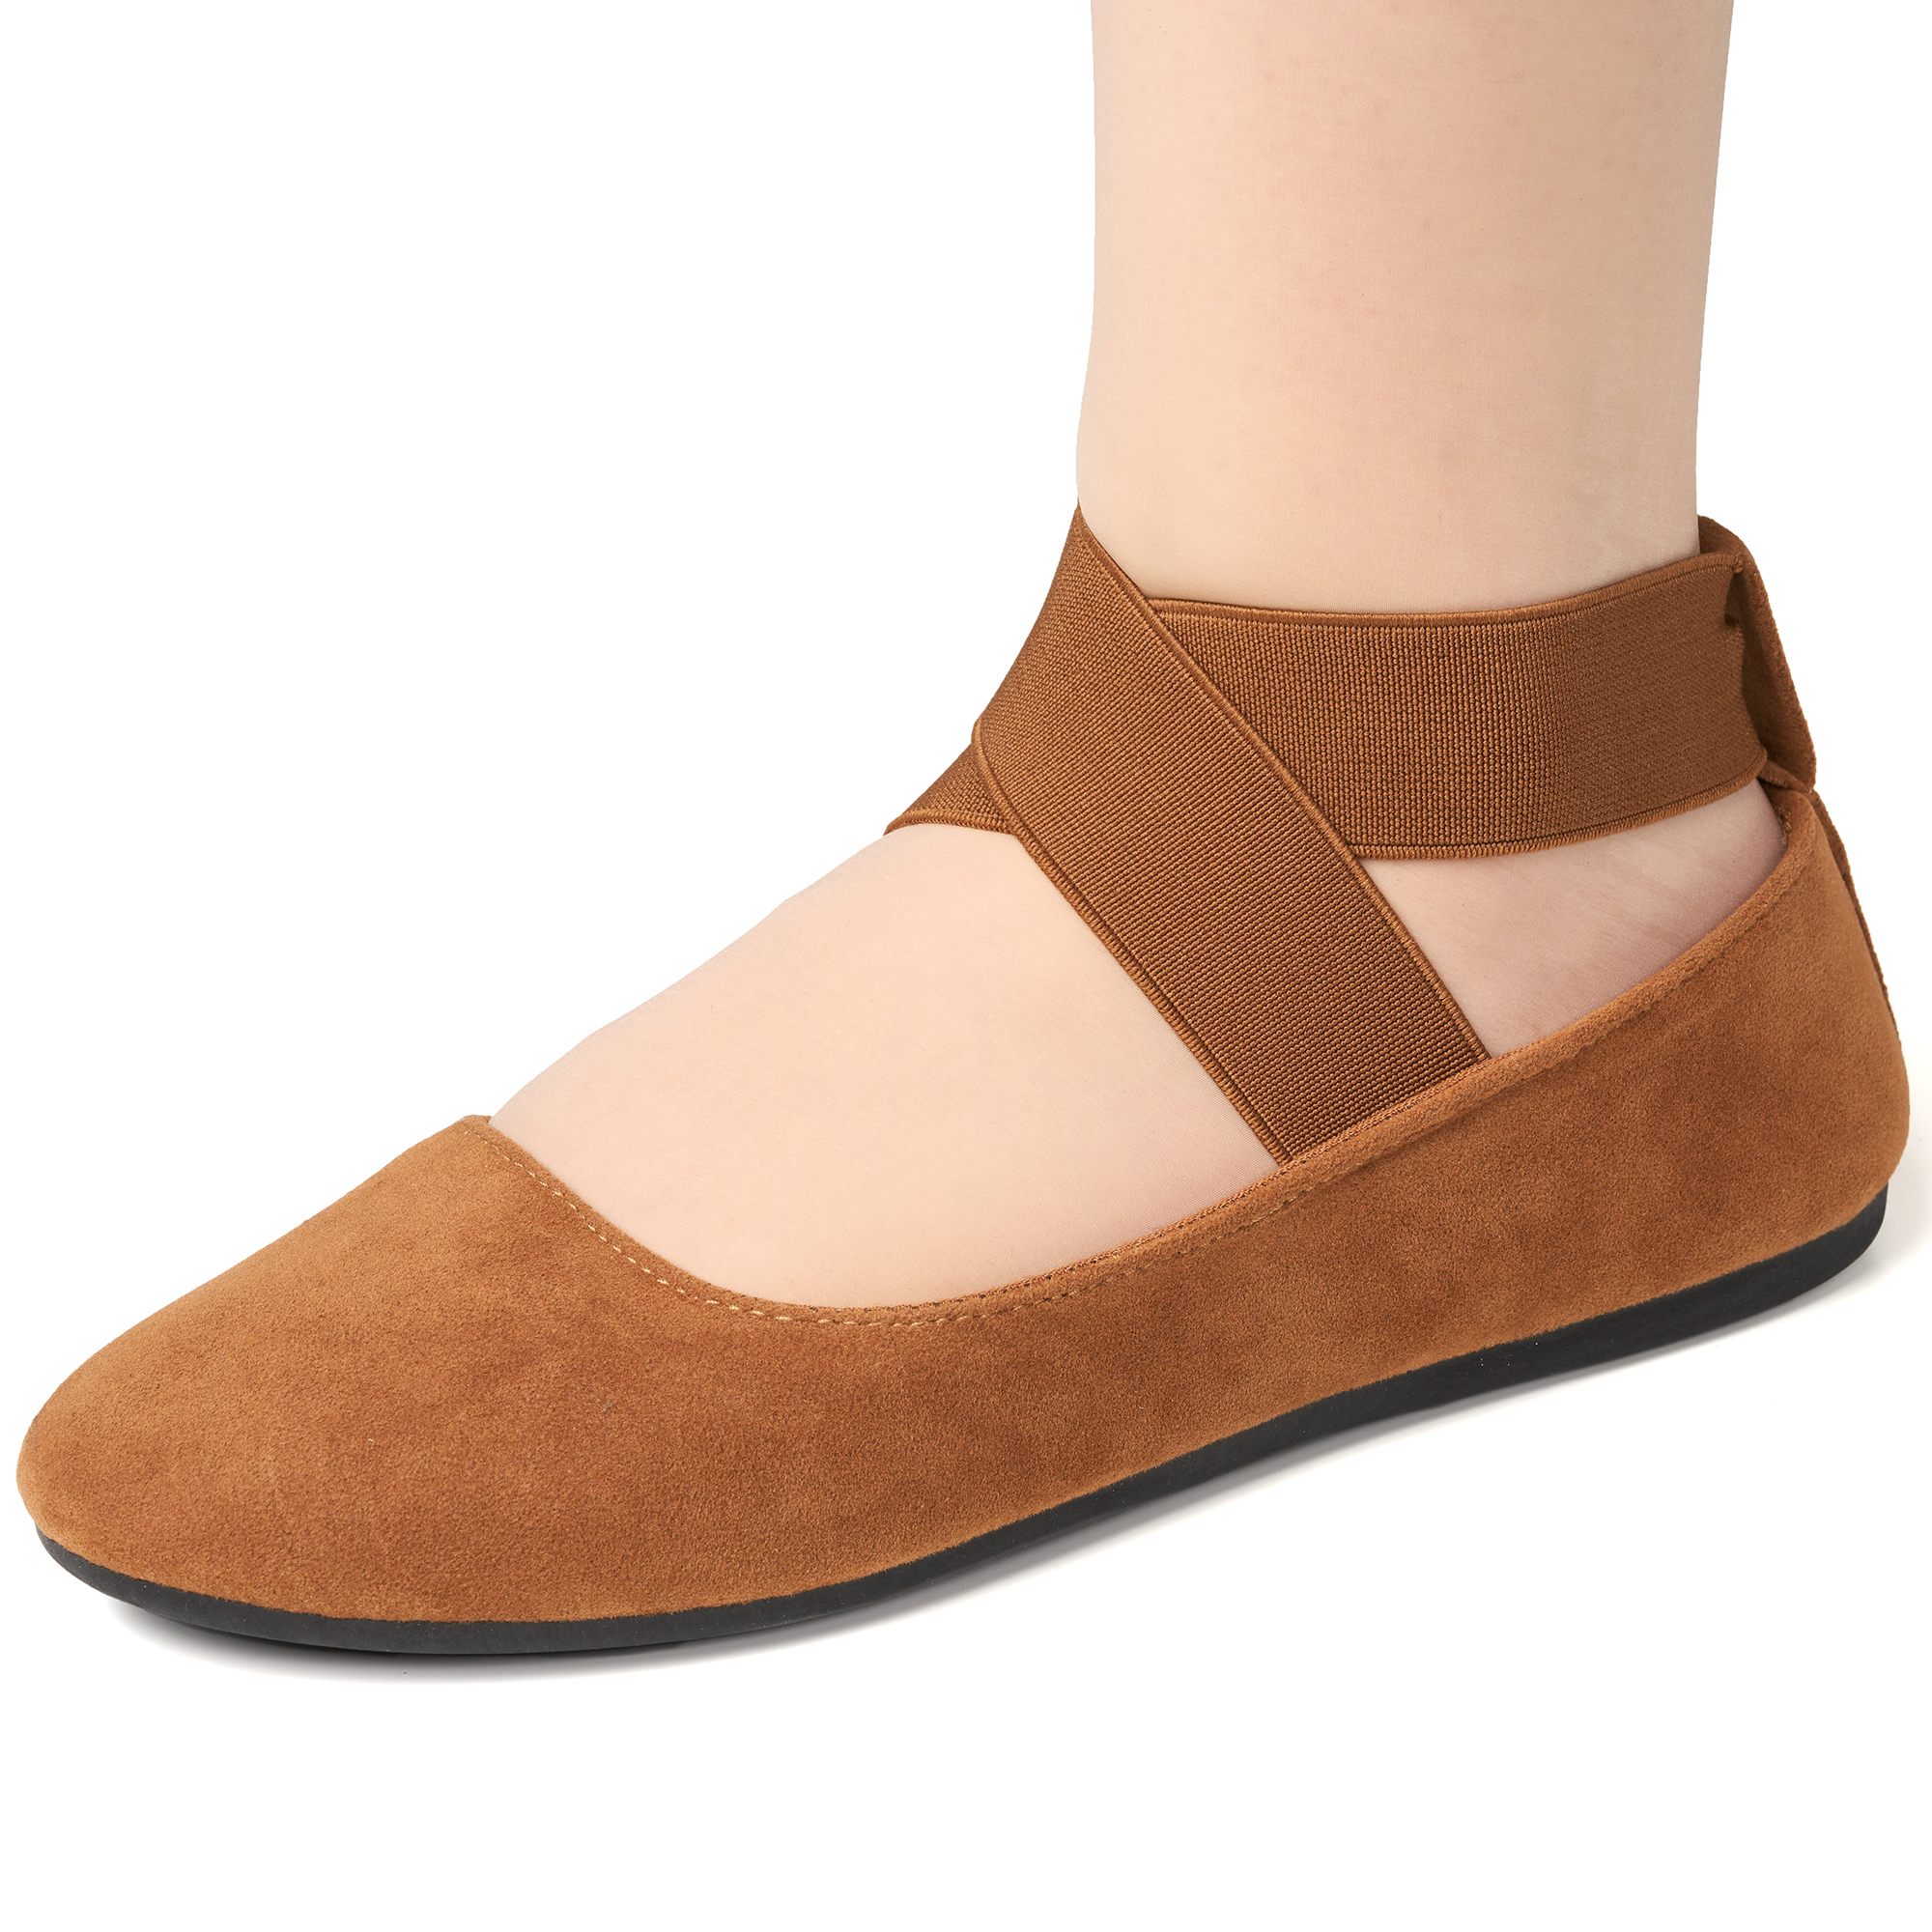 Alpine-Swiss-Peony-Womens-Ballet-Flats-Elastic-Ankle-Strap-Shoes-Slip-On-Loafers thumbnail 57